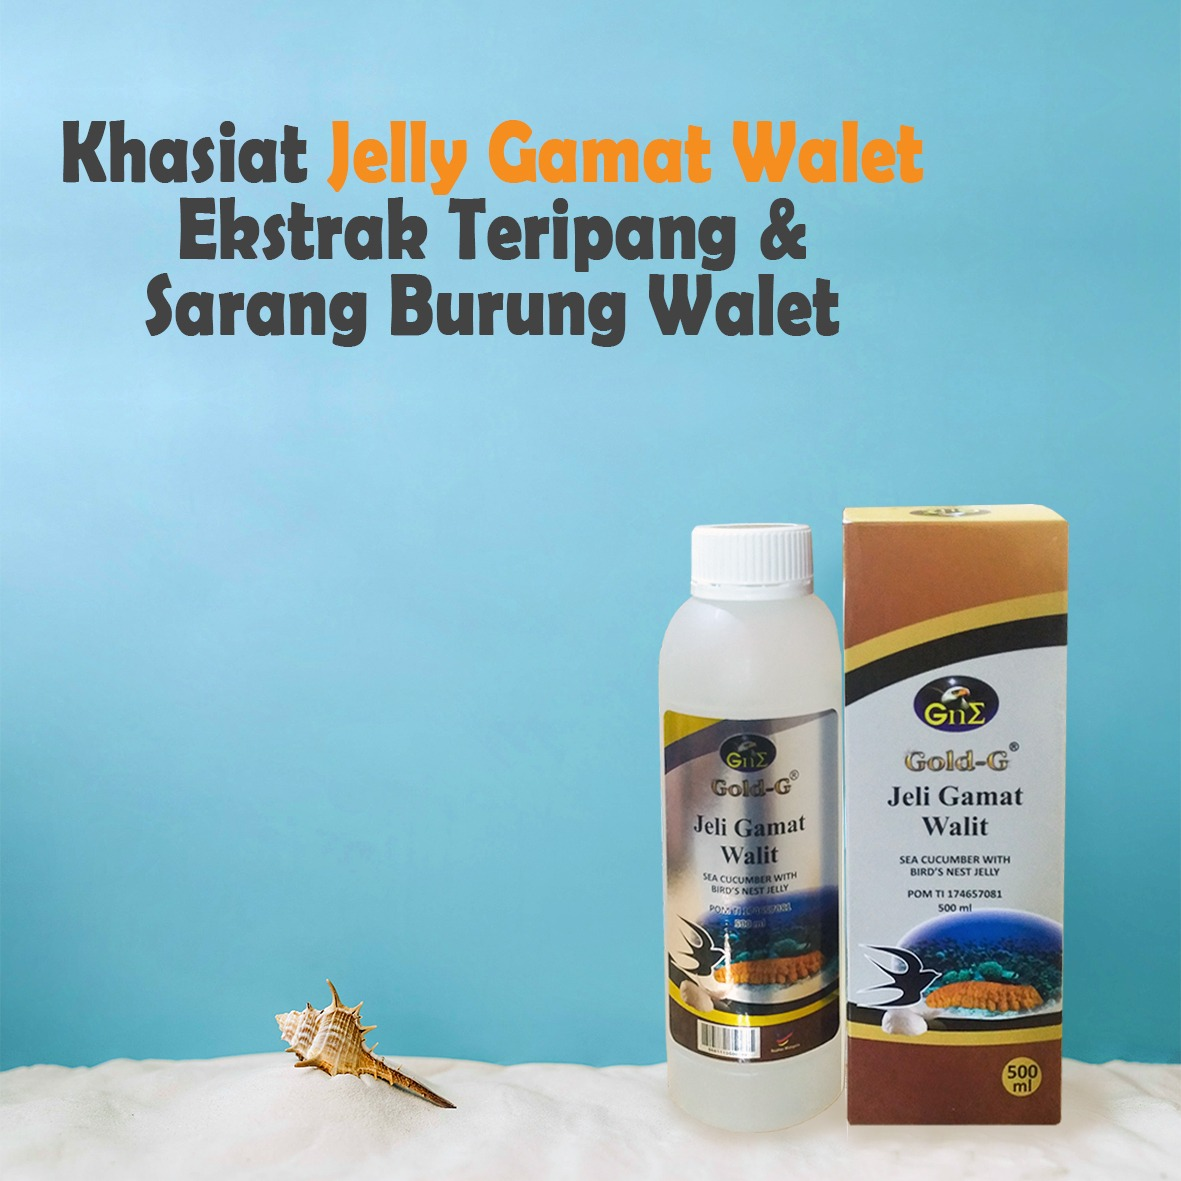 Gold G Herbal Jelly Gamat Sea Cucumber 500ml 6 Botol Page 3 500 Source Khasiat